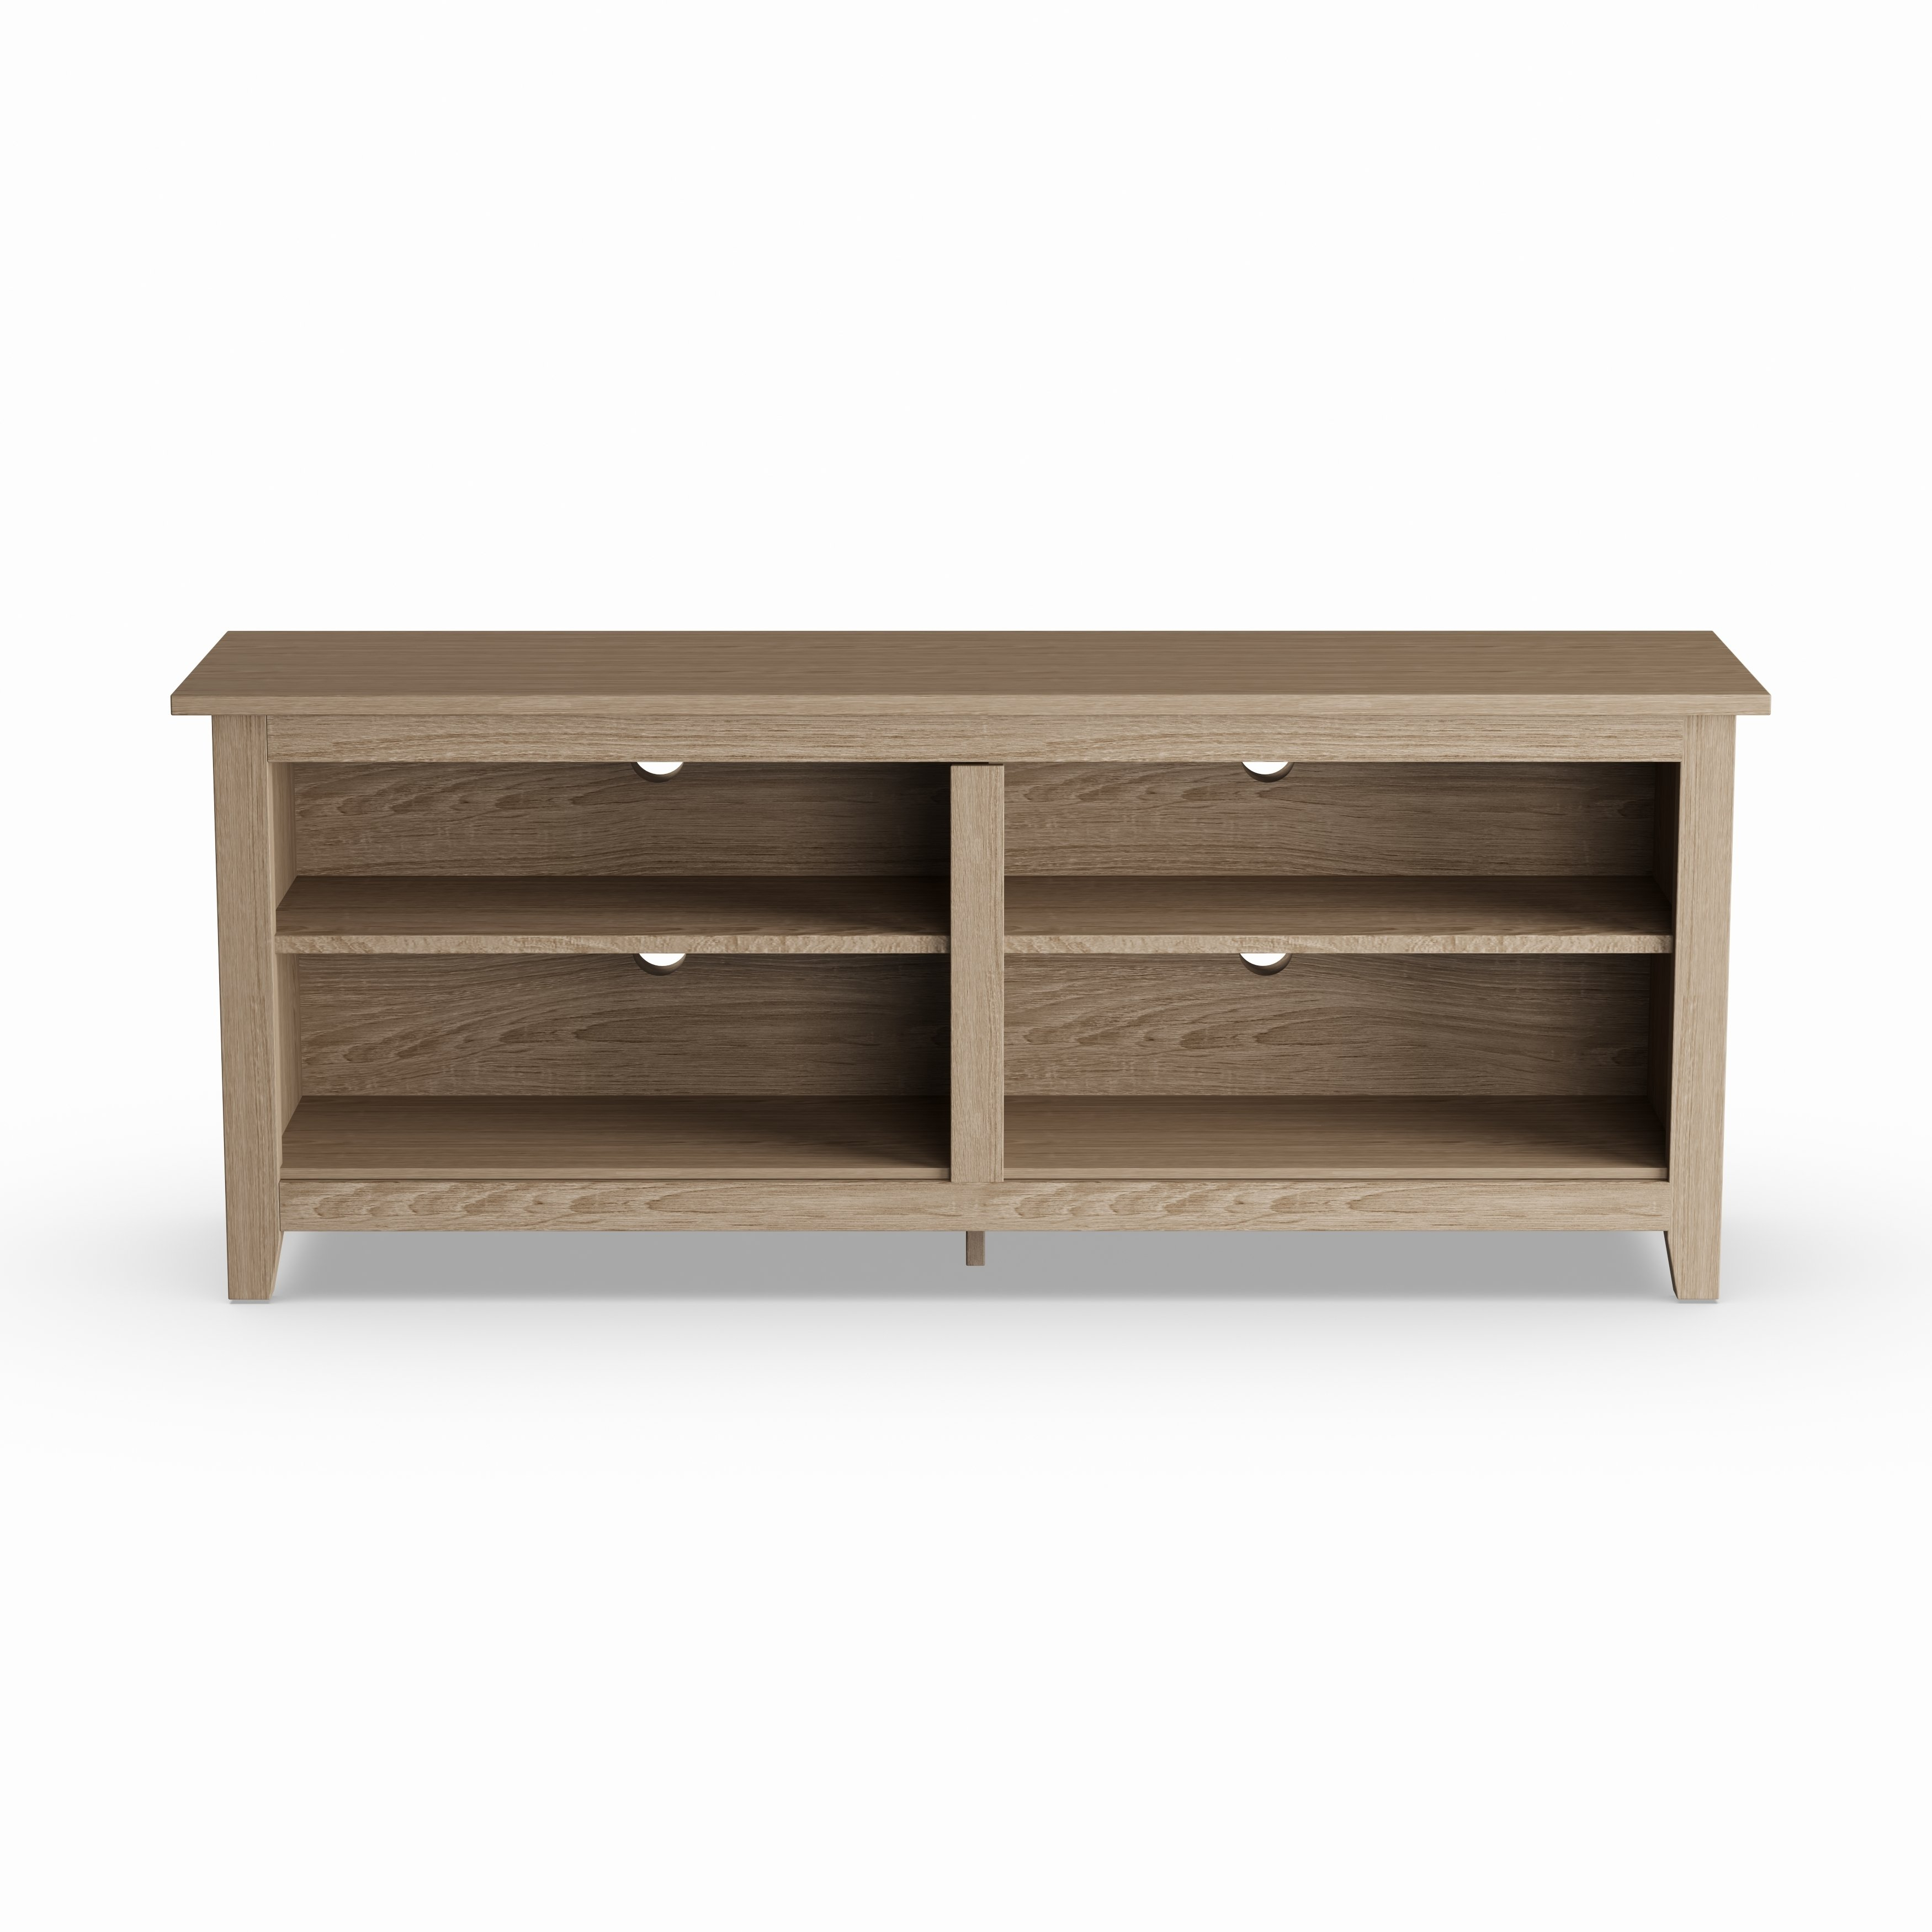 Shop Porch & Den Dexter 58-Inch Driftwood Tv Stand - Free Shipping regarding Abbot 60 Inch Tv Stands (Image 24 of 30)